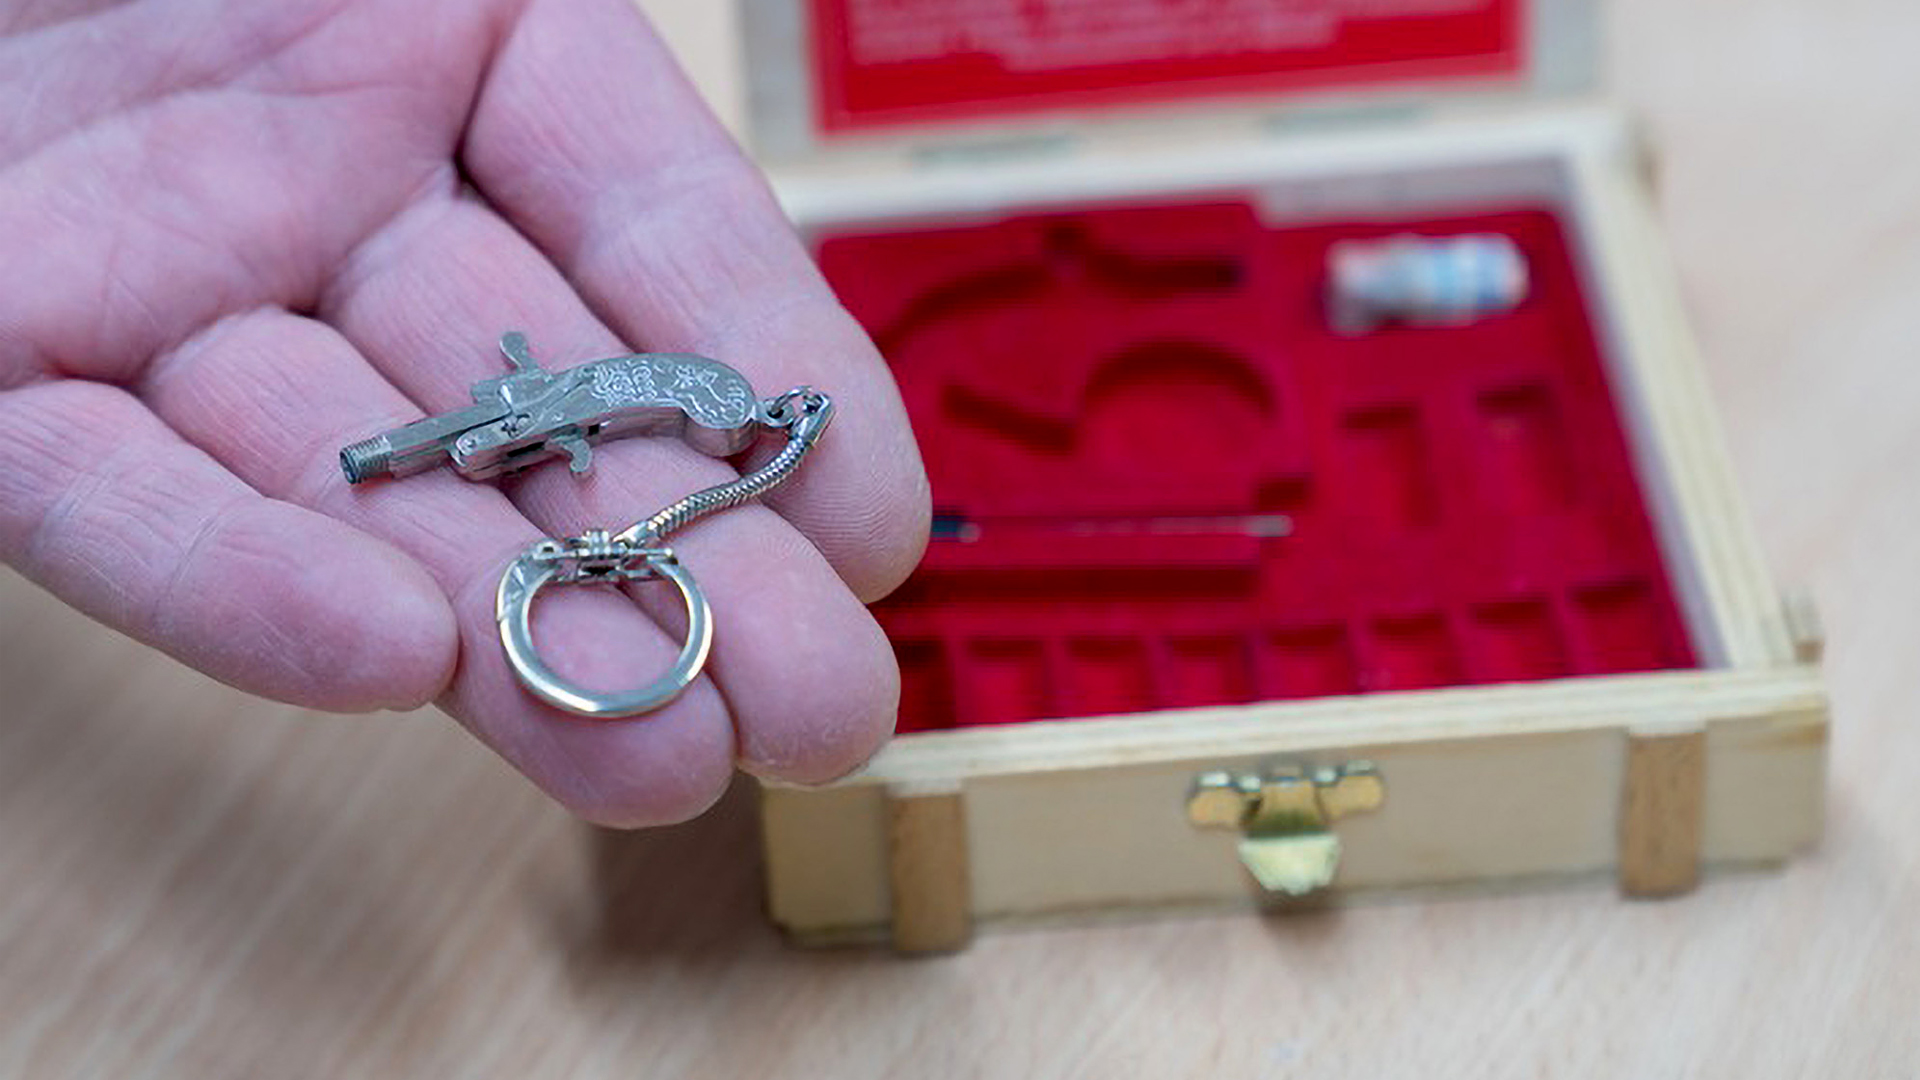 Small Arms: Police Seize Tiny Keyring Gun From Plane Passenger